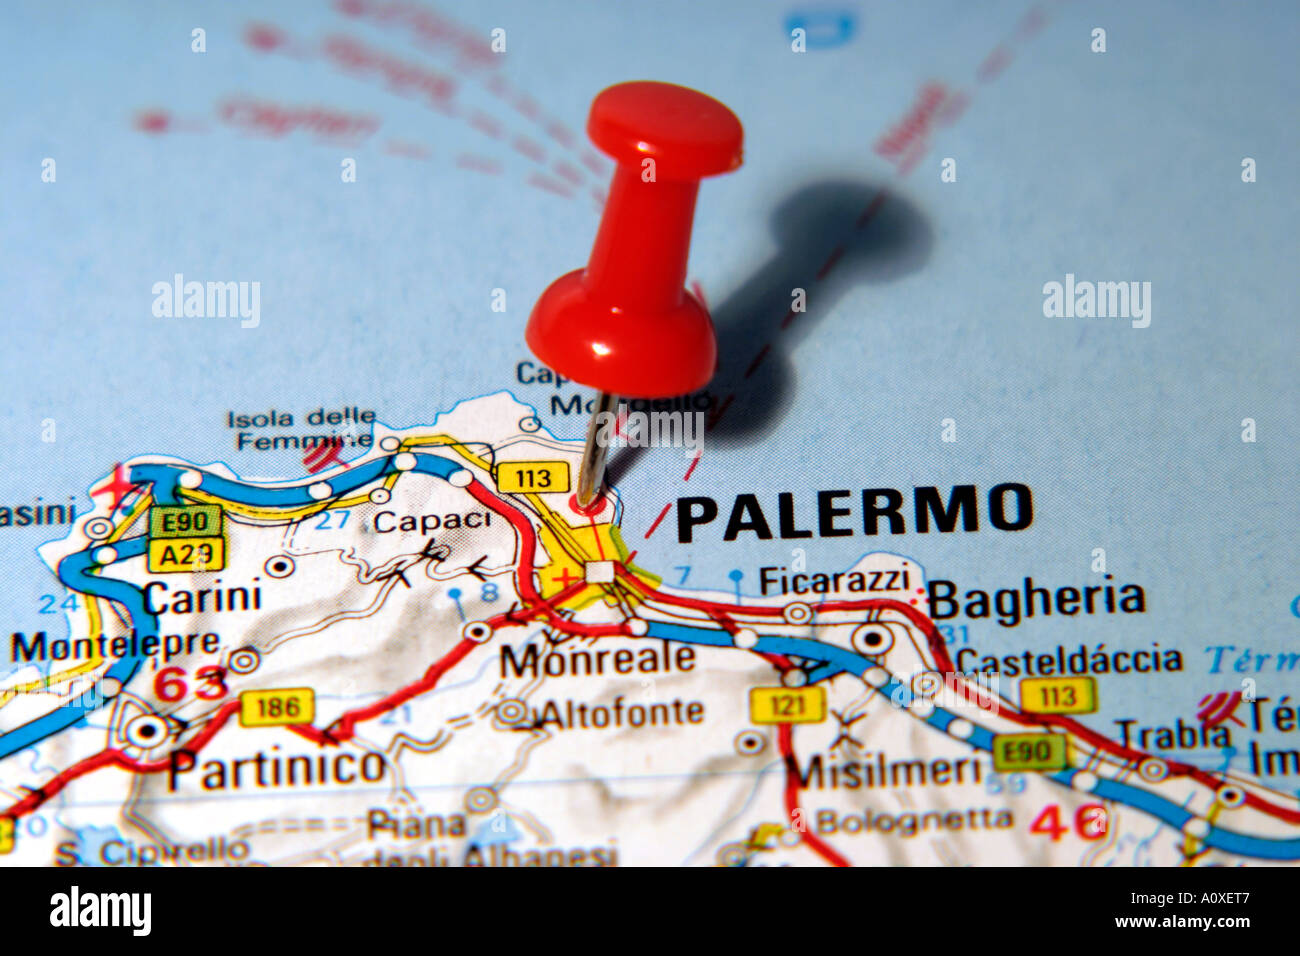 Sicily On Map Of Italy.Map Pin Pointing To Palermo Sicily Italy On A Road Map Stock